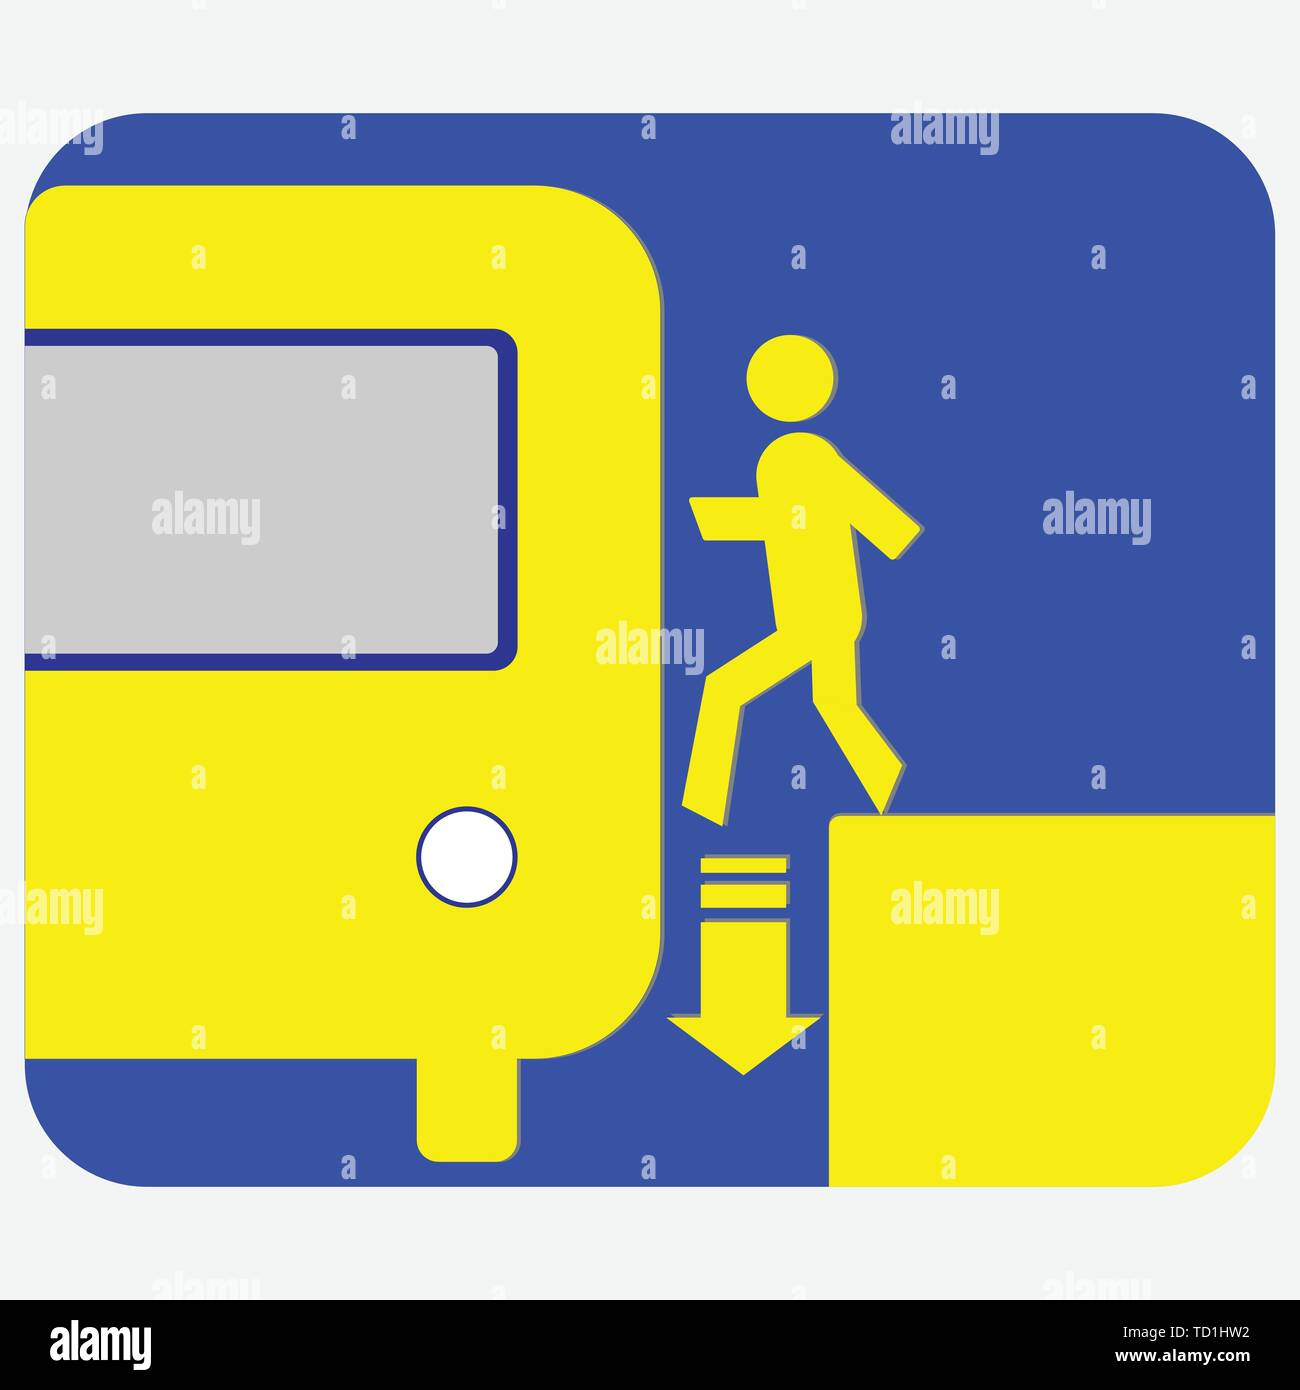 Be careful when entering the subway train icon - Stock Vector